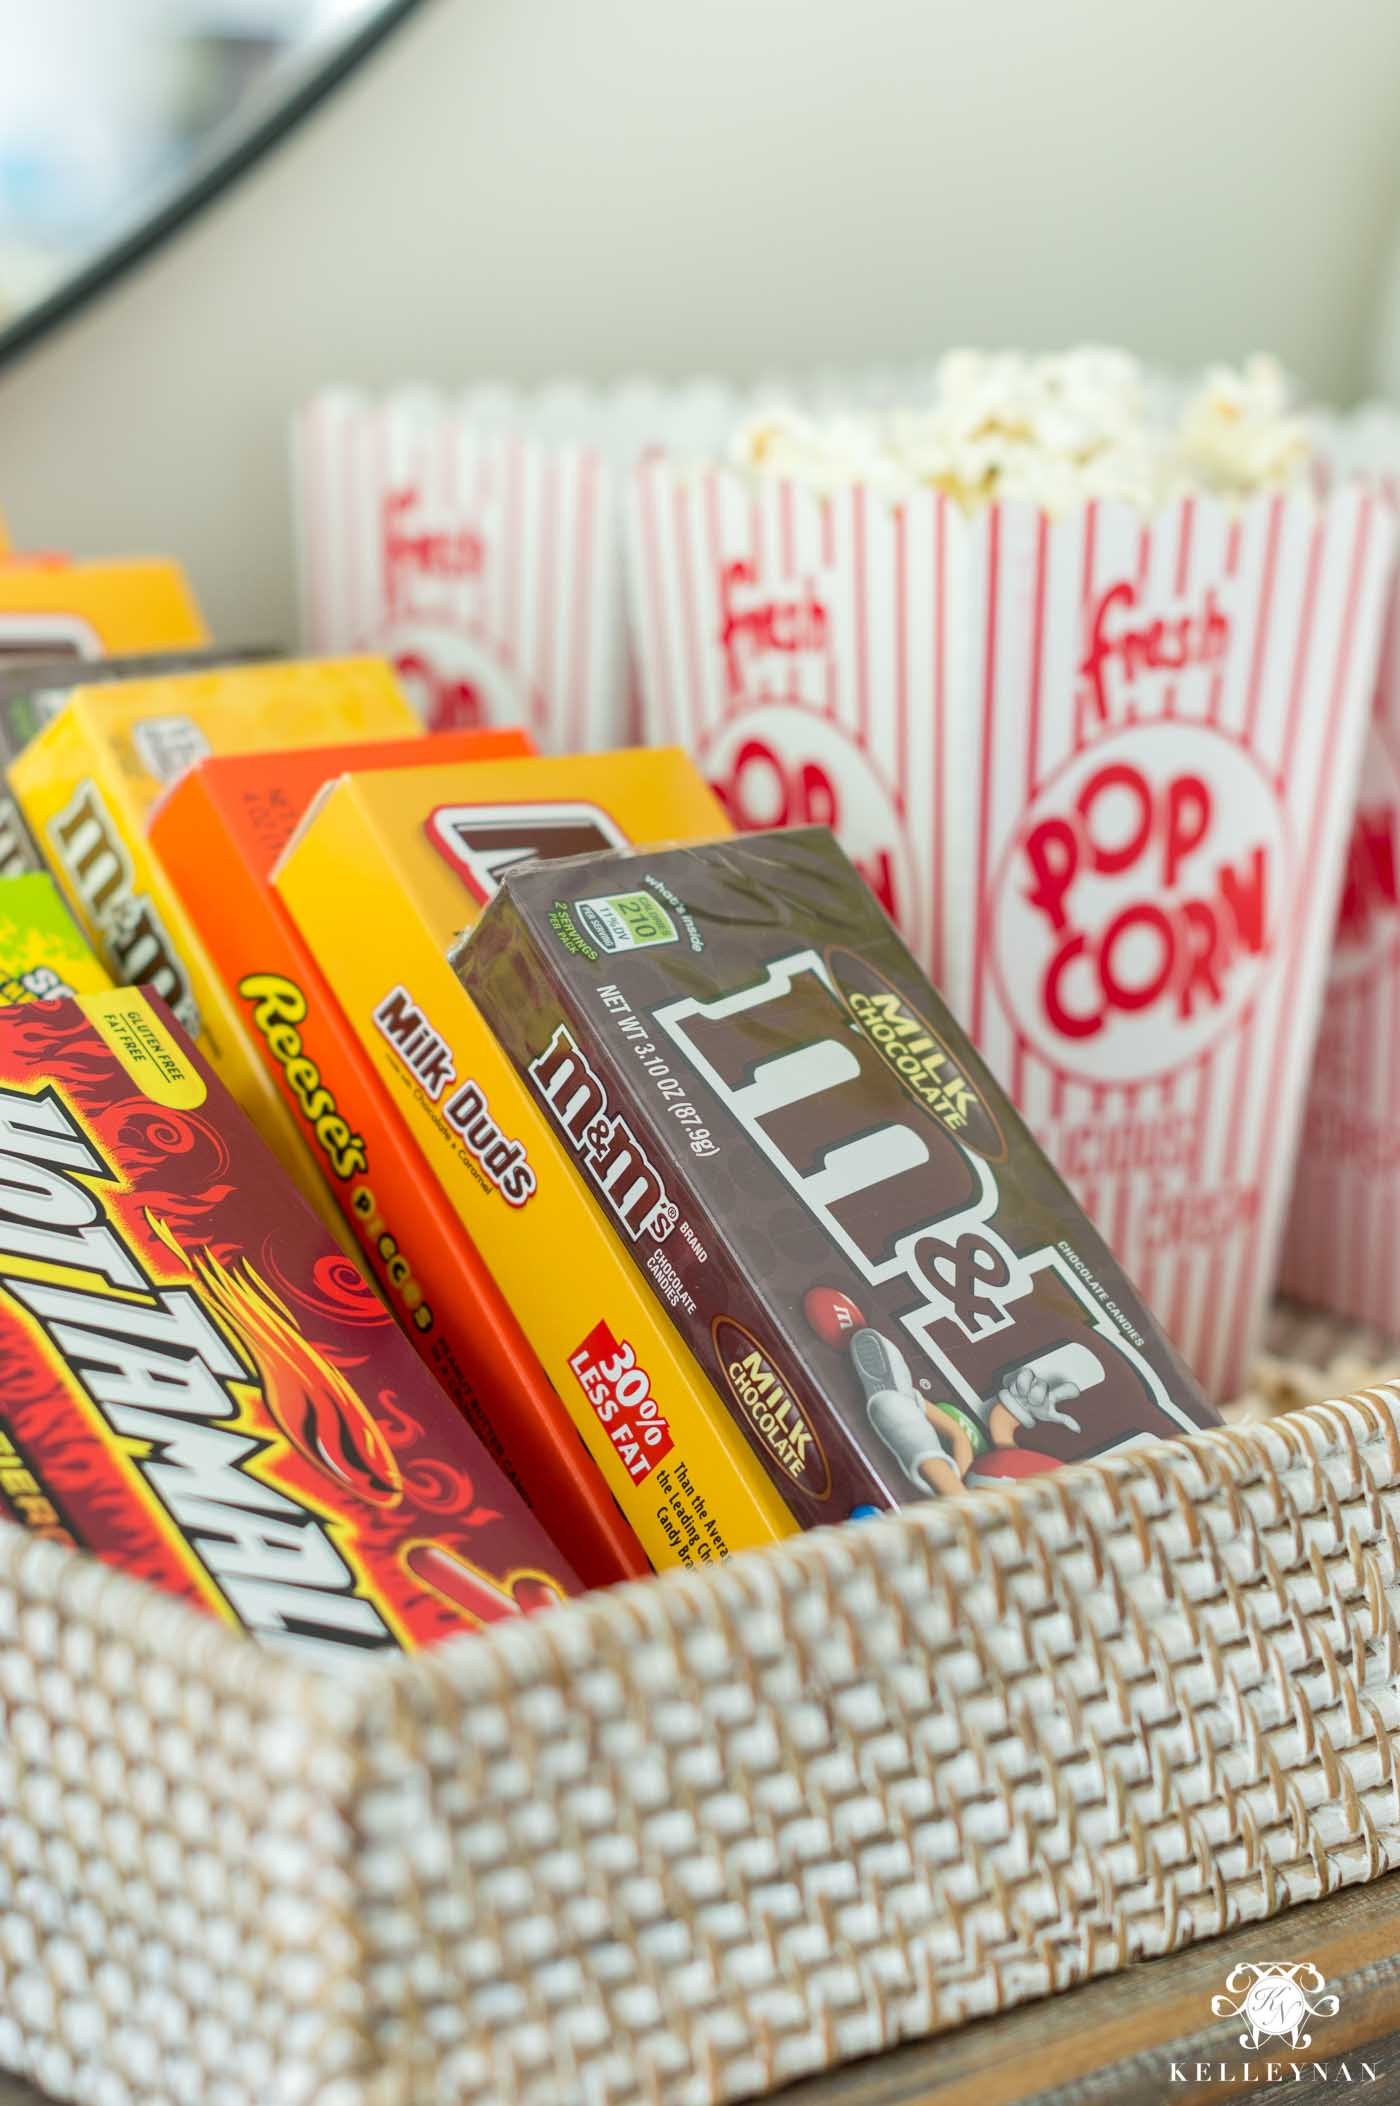 Candy and popcorn bar setup at home for afternoon football snack